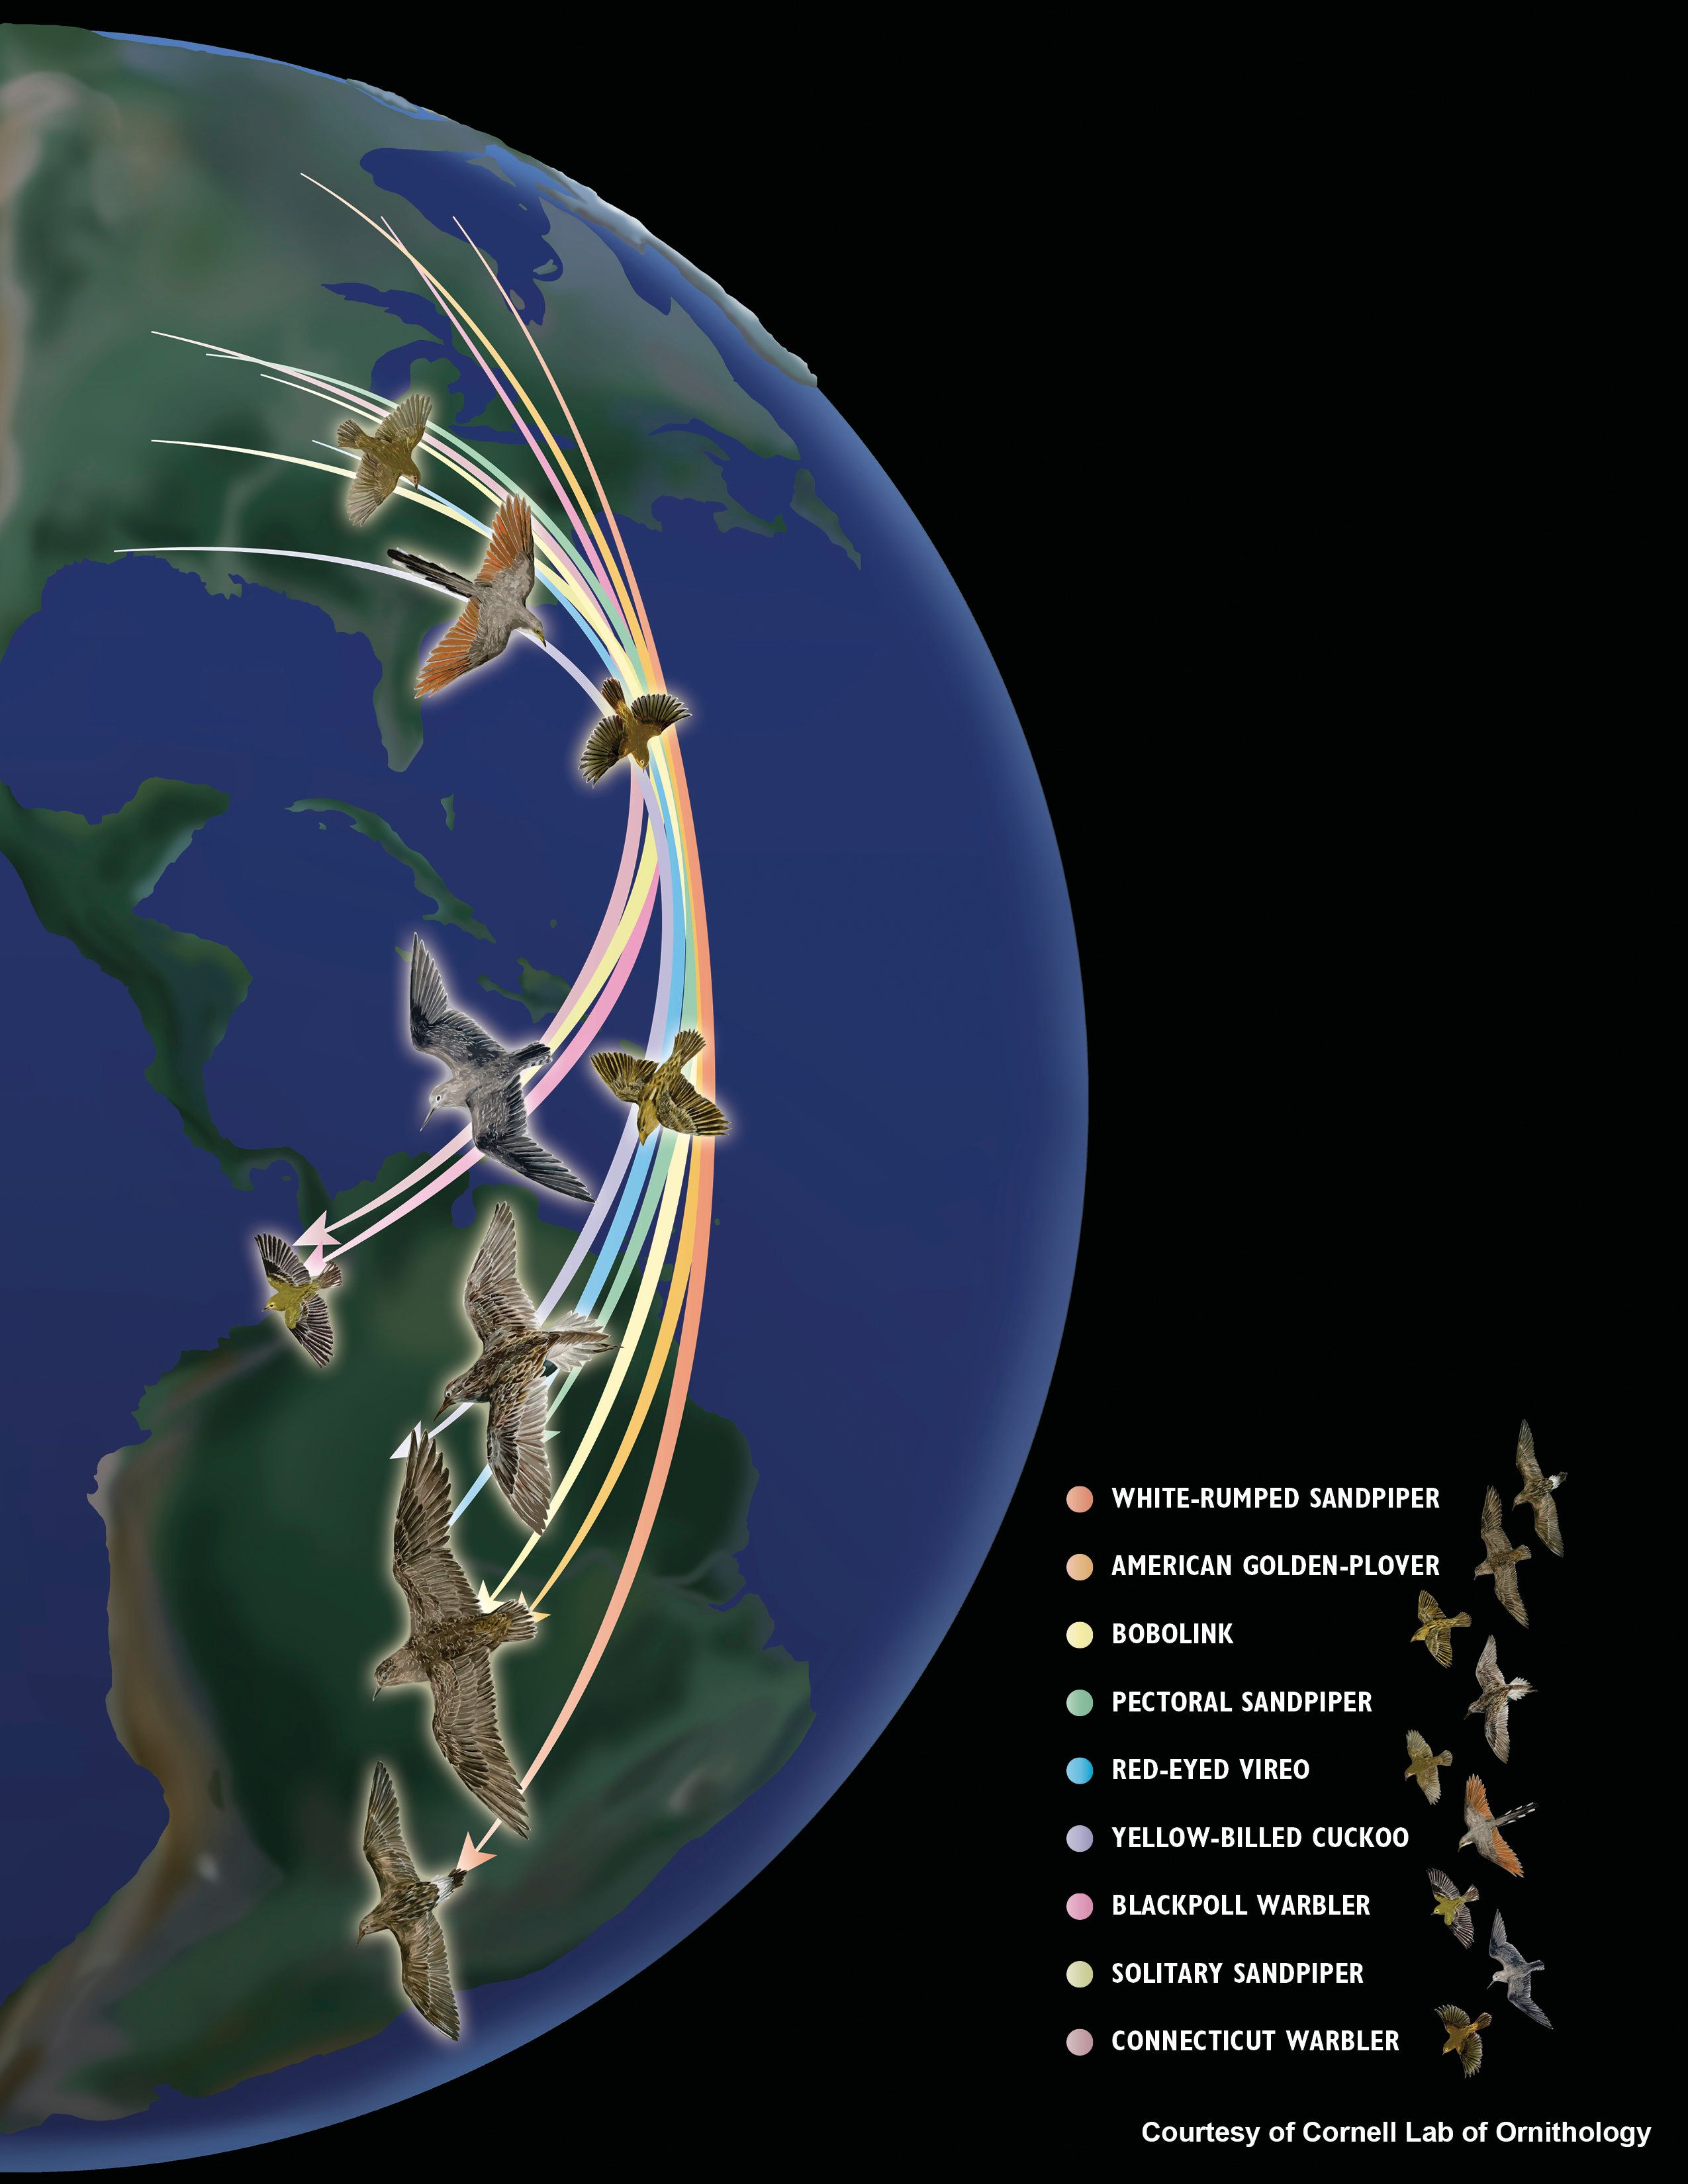 According to a new study, this drawing depicts the migratory patterns of birds across North and South America.